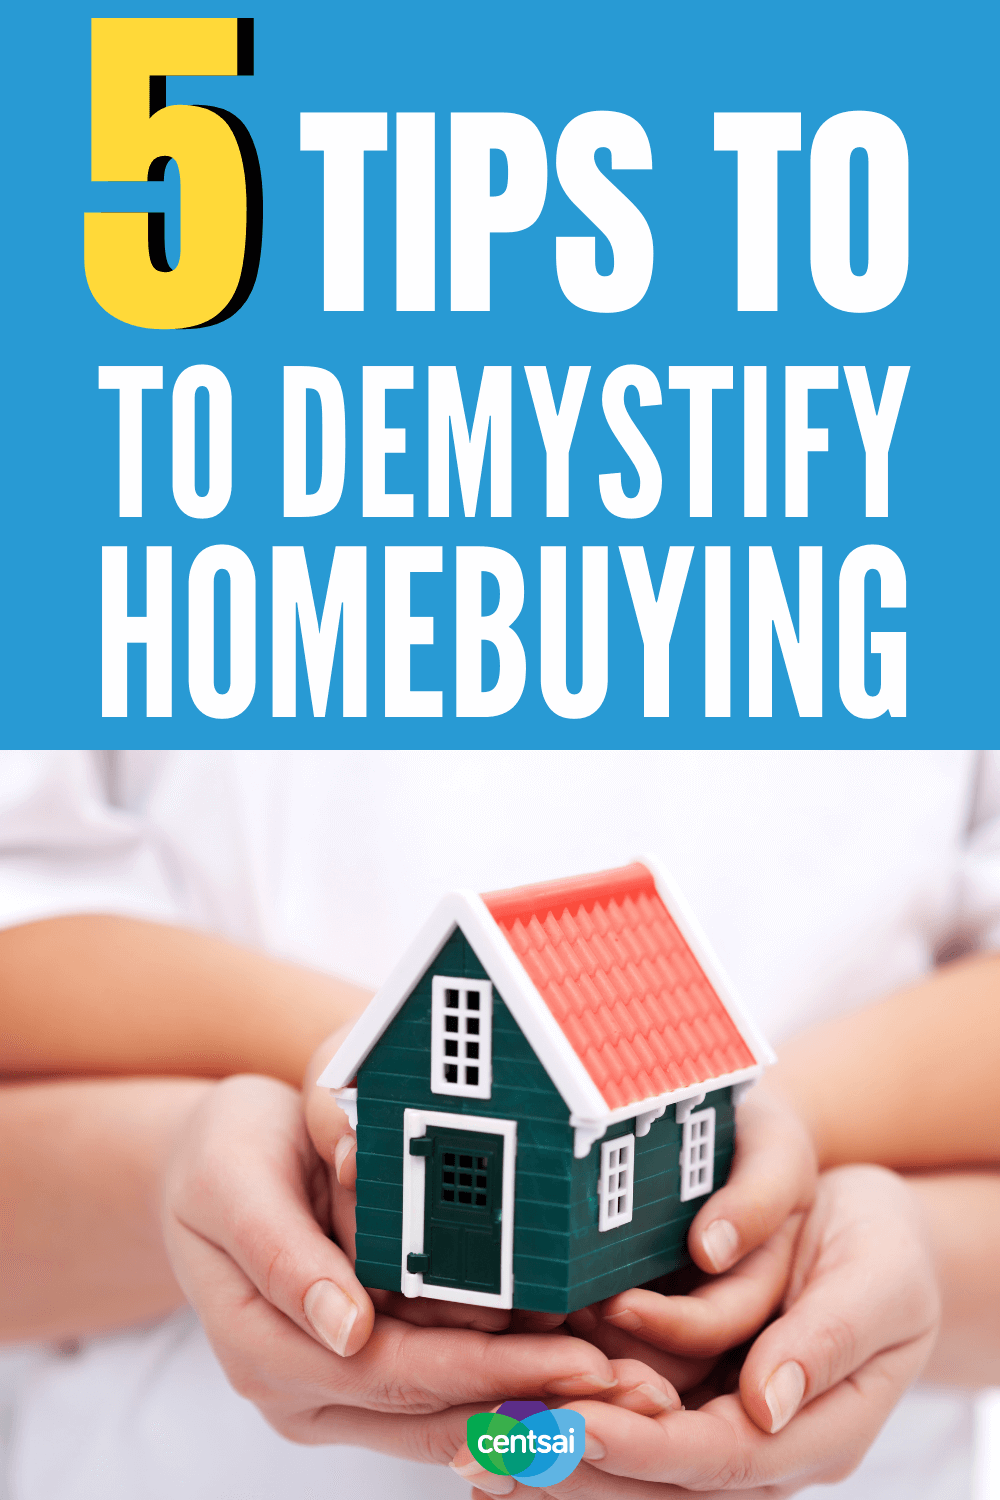 5 Tips to Demystify Homebuying. Too many Americans don't know much about the homebuying process. Learn five real estate tips for buyers that can help you in your search. #CentSai #Investing #investmenttips #investing #investment